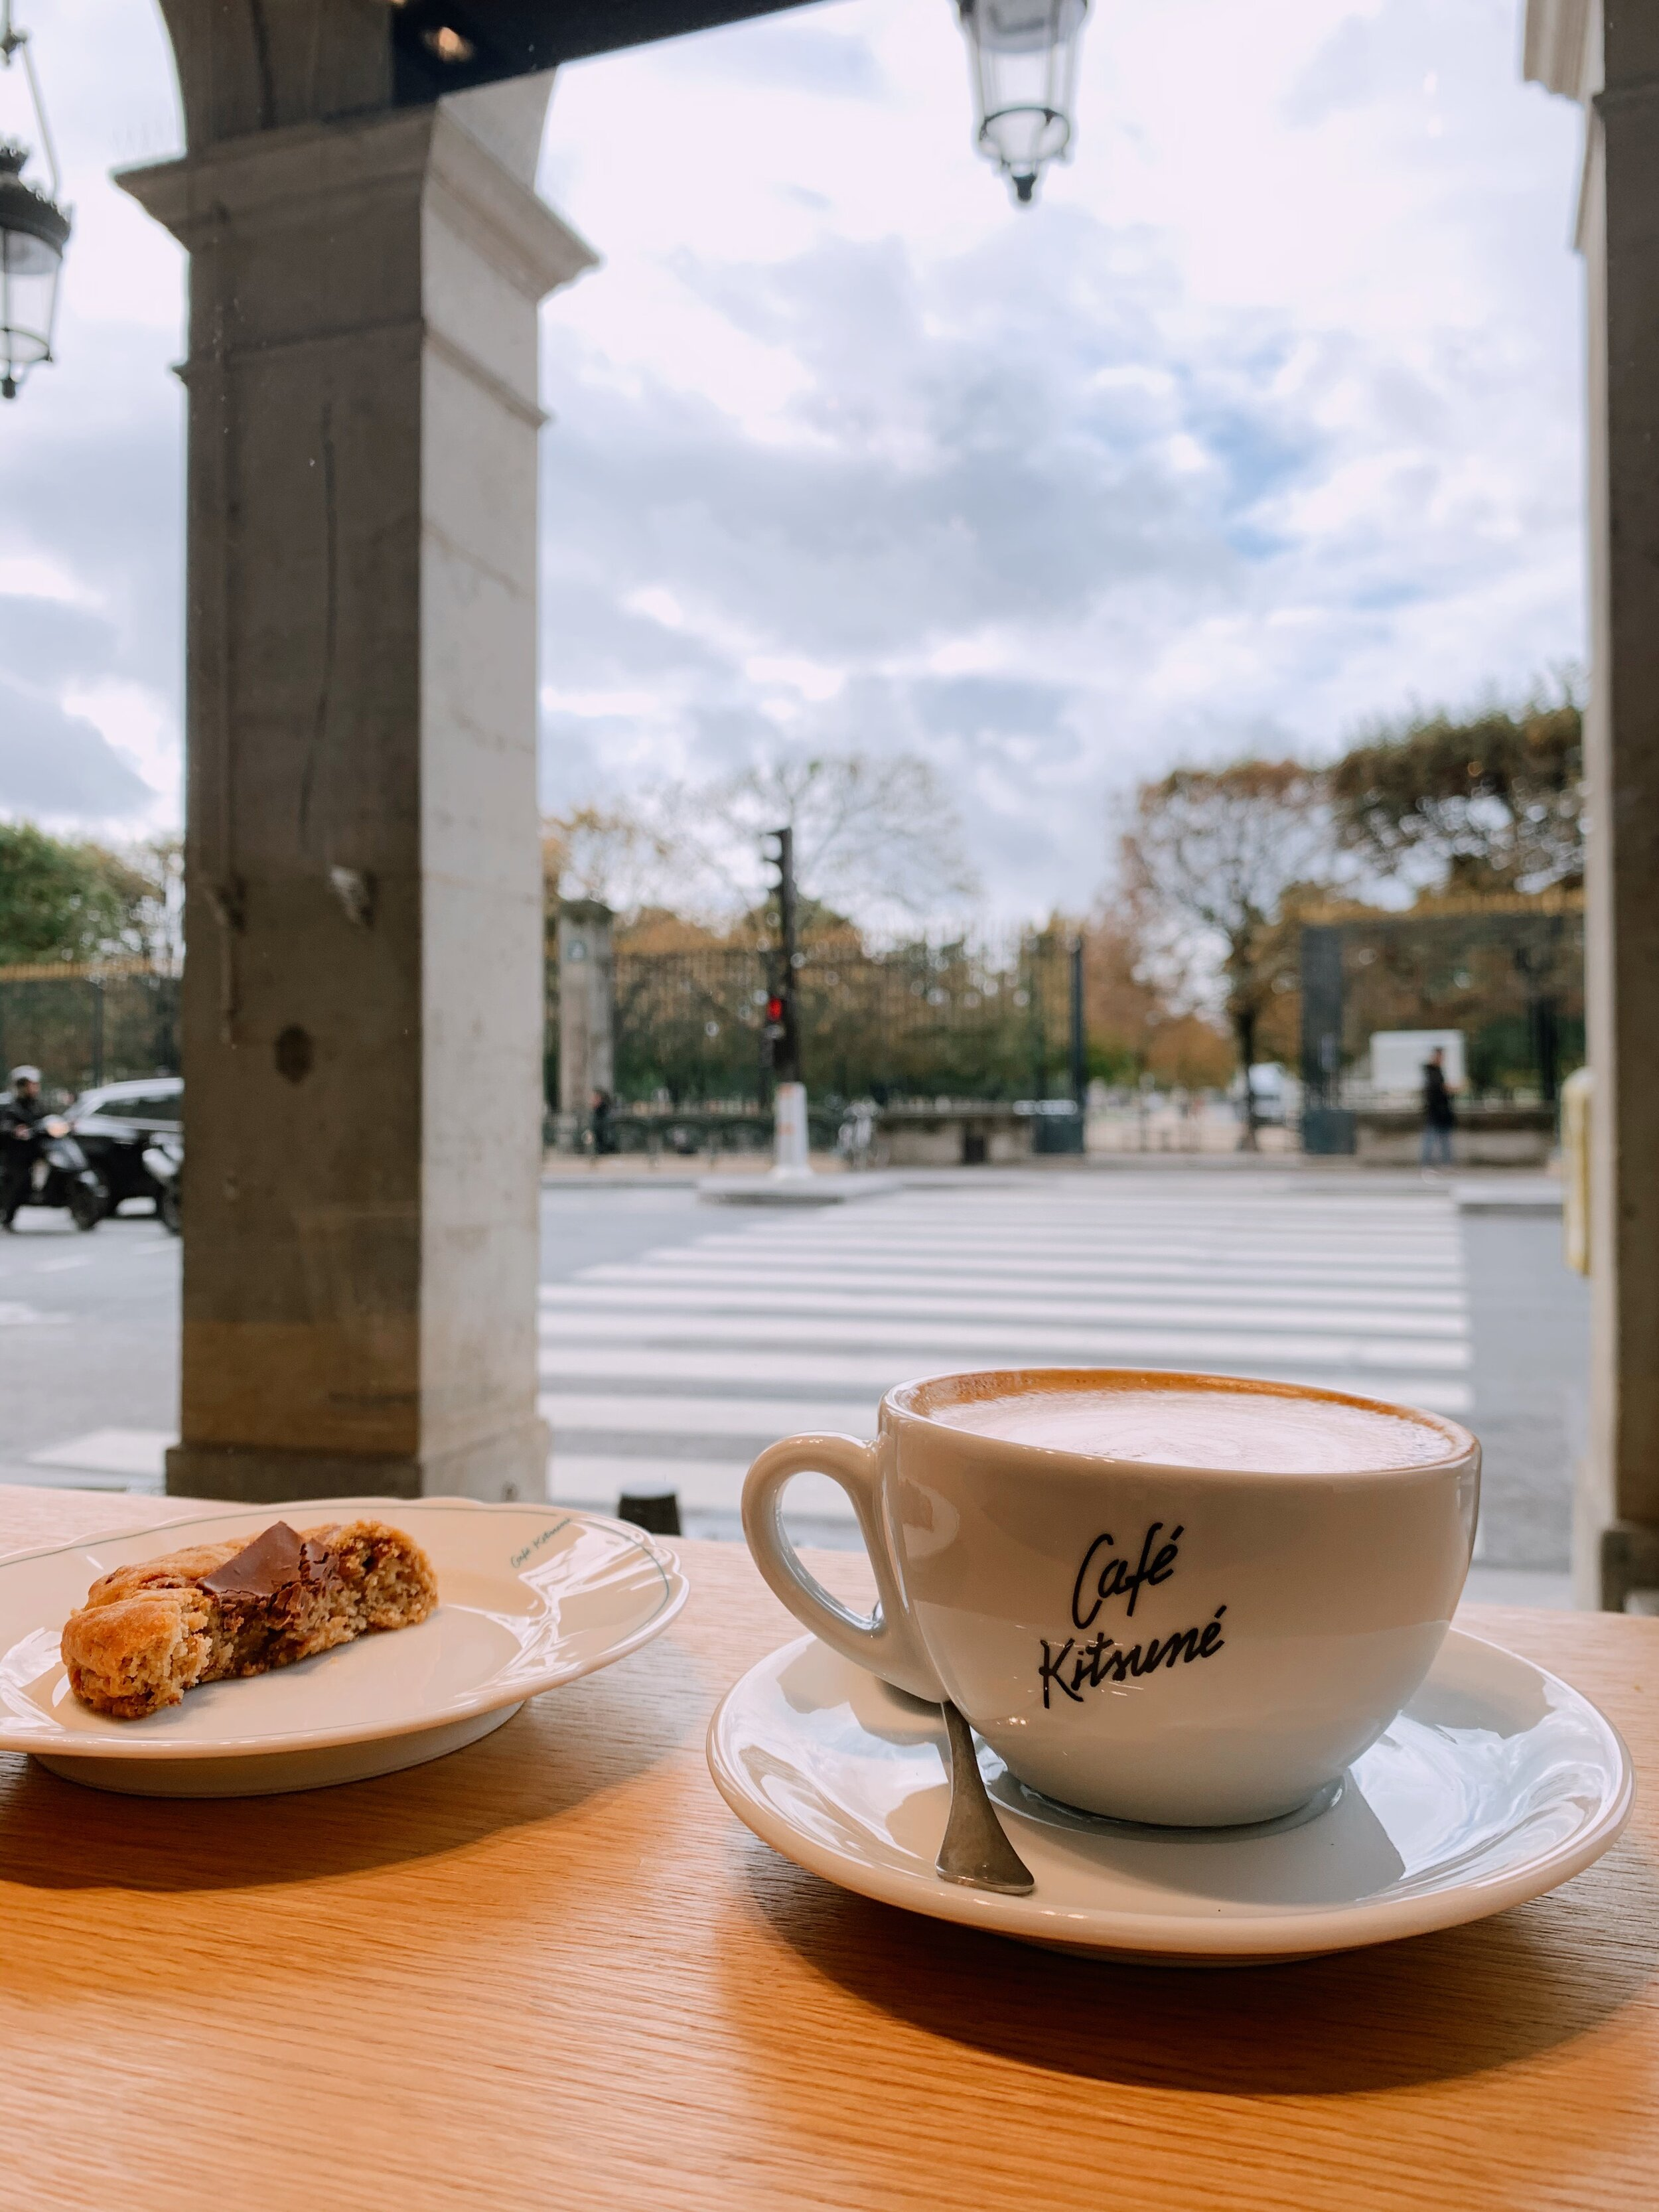 Cafe Kitsune is right by the Louvre!